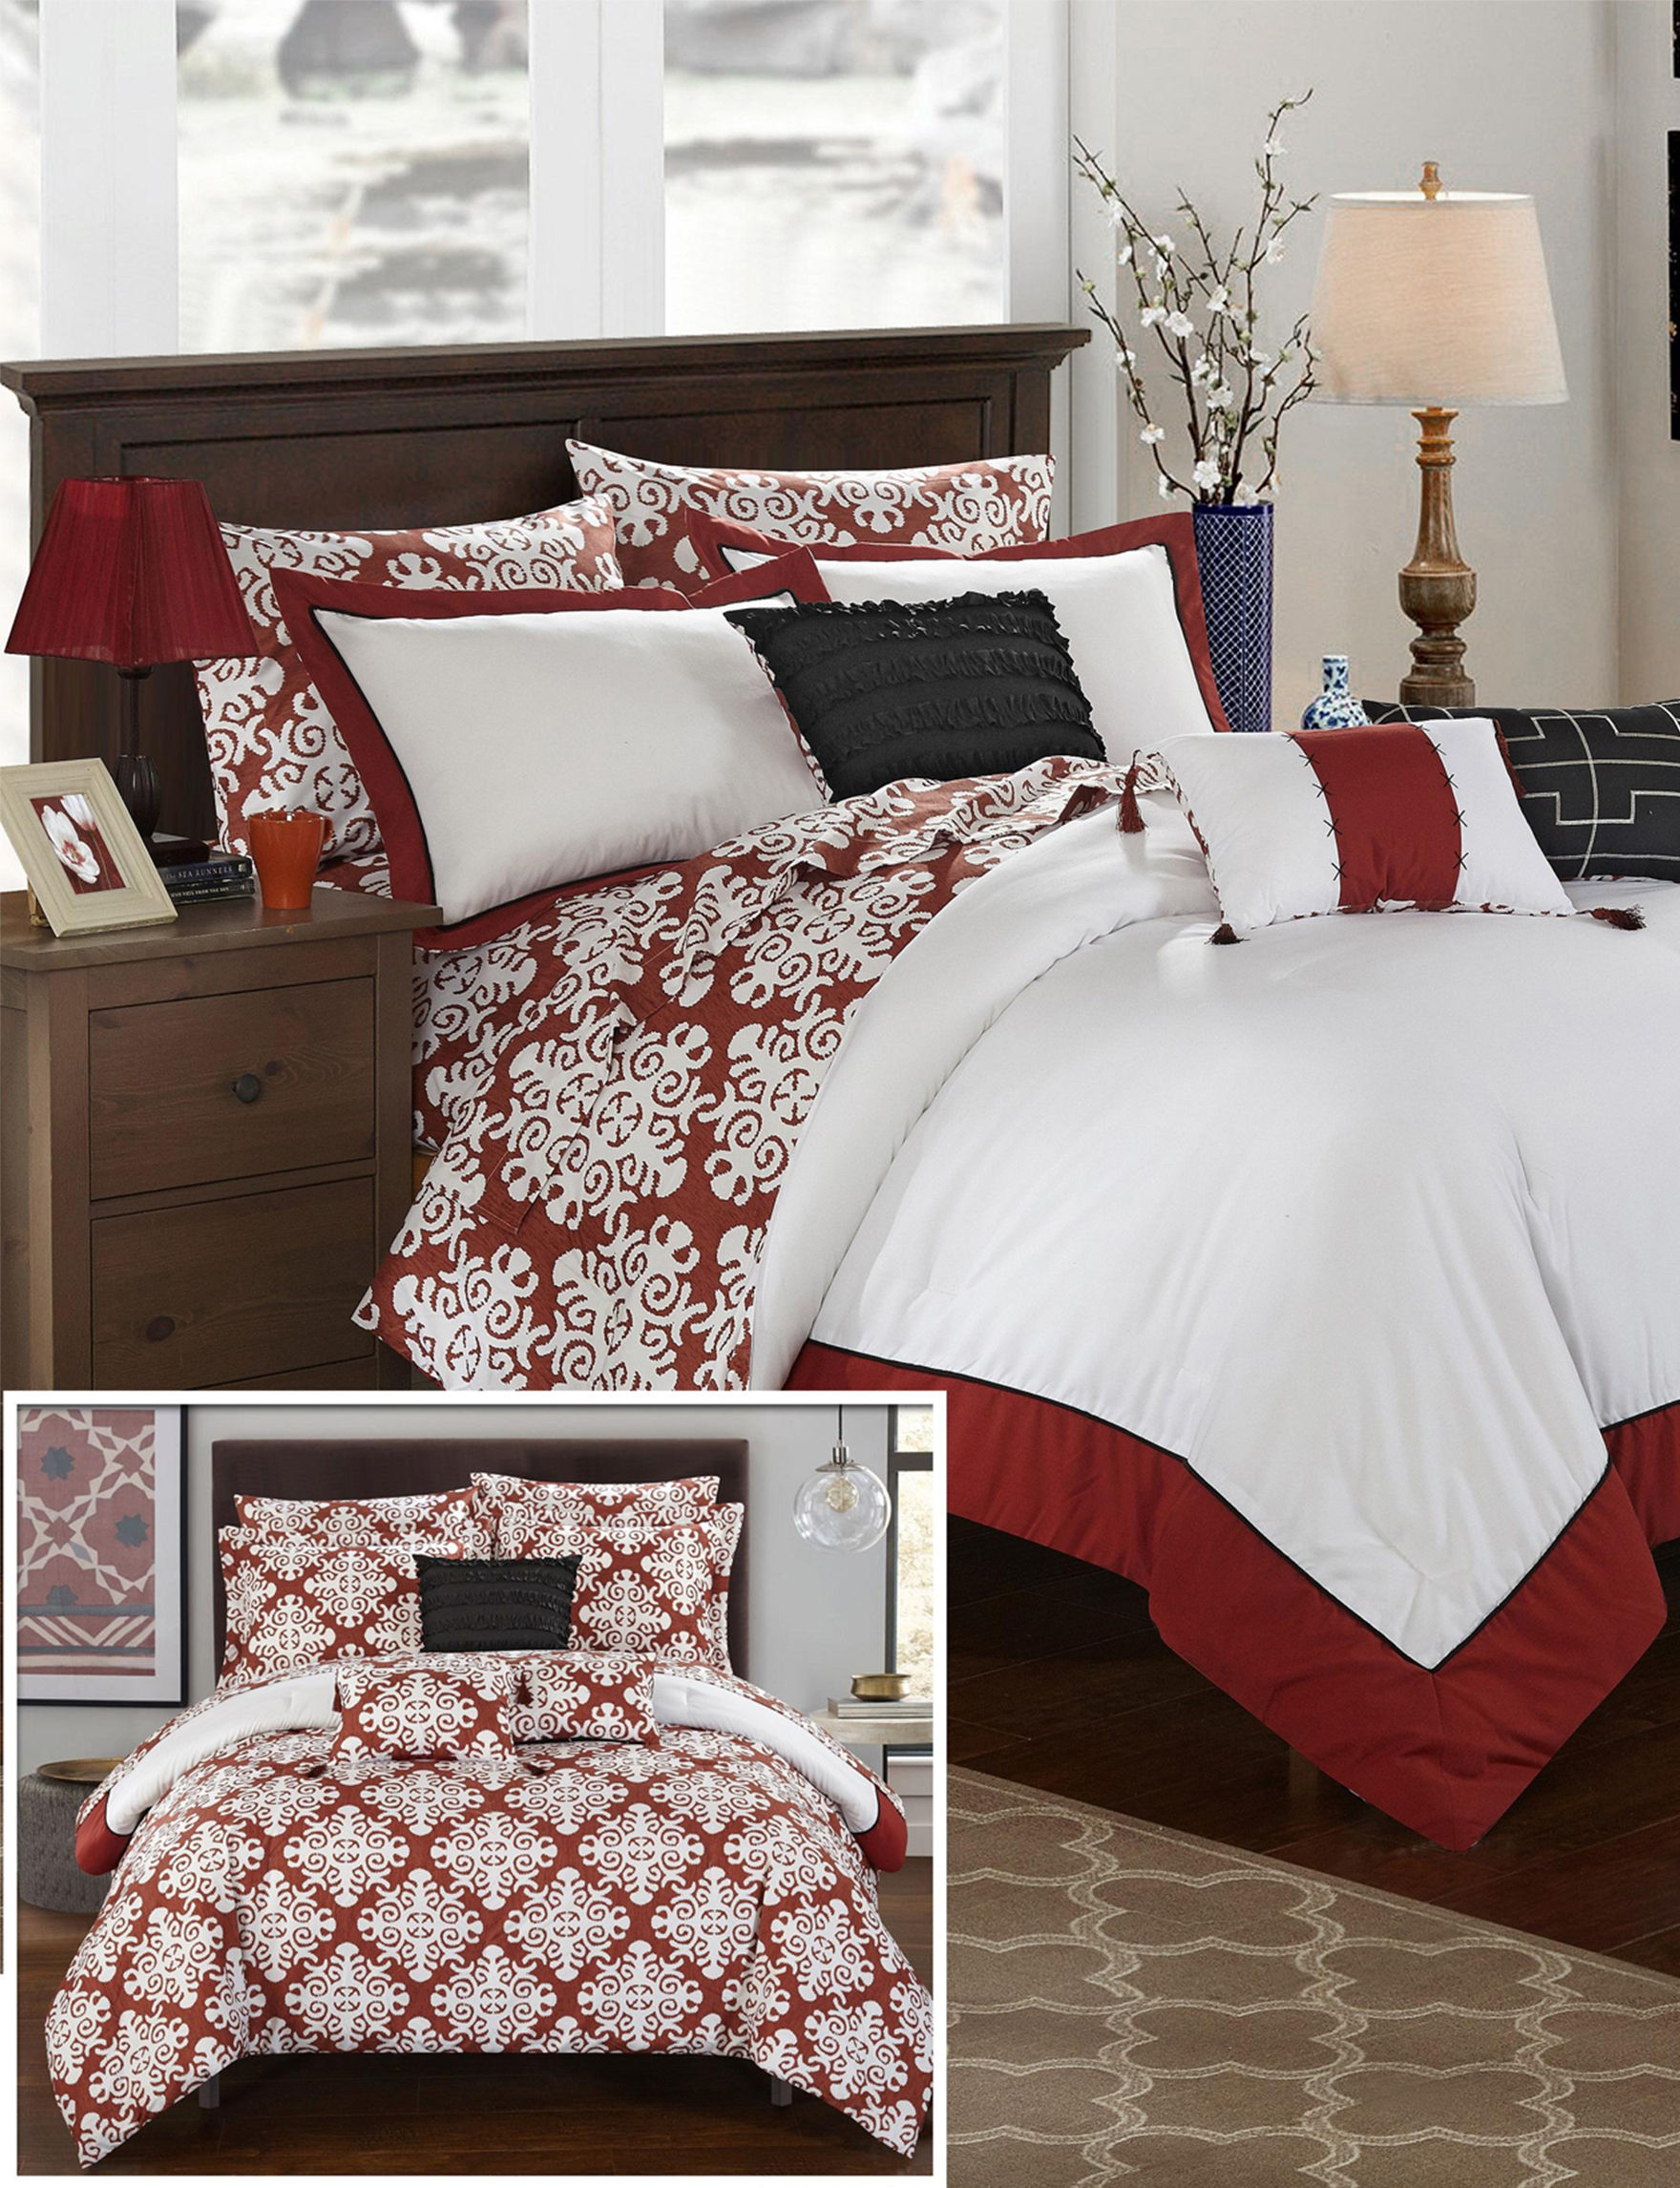 Chic Home Design Red Comforters & Comforter Sets